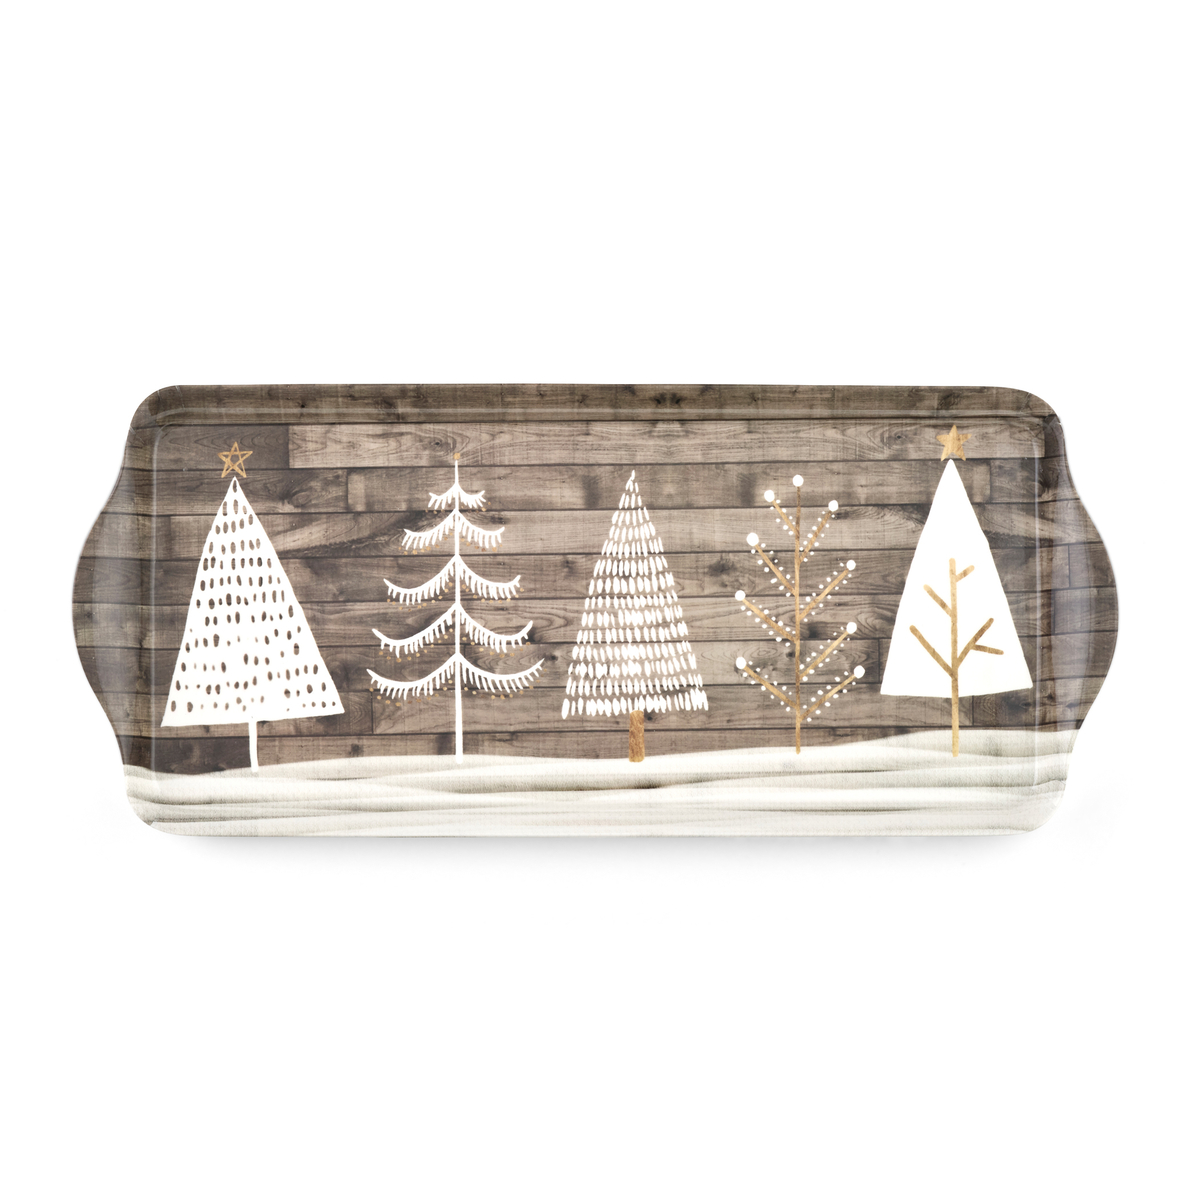 Pimpernel Wooden White Christmas Melamine Sandwich Tray image number 0